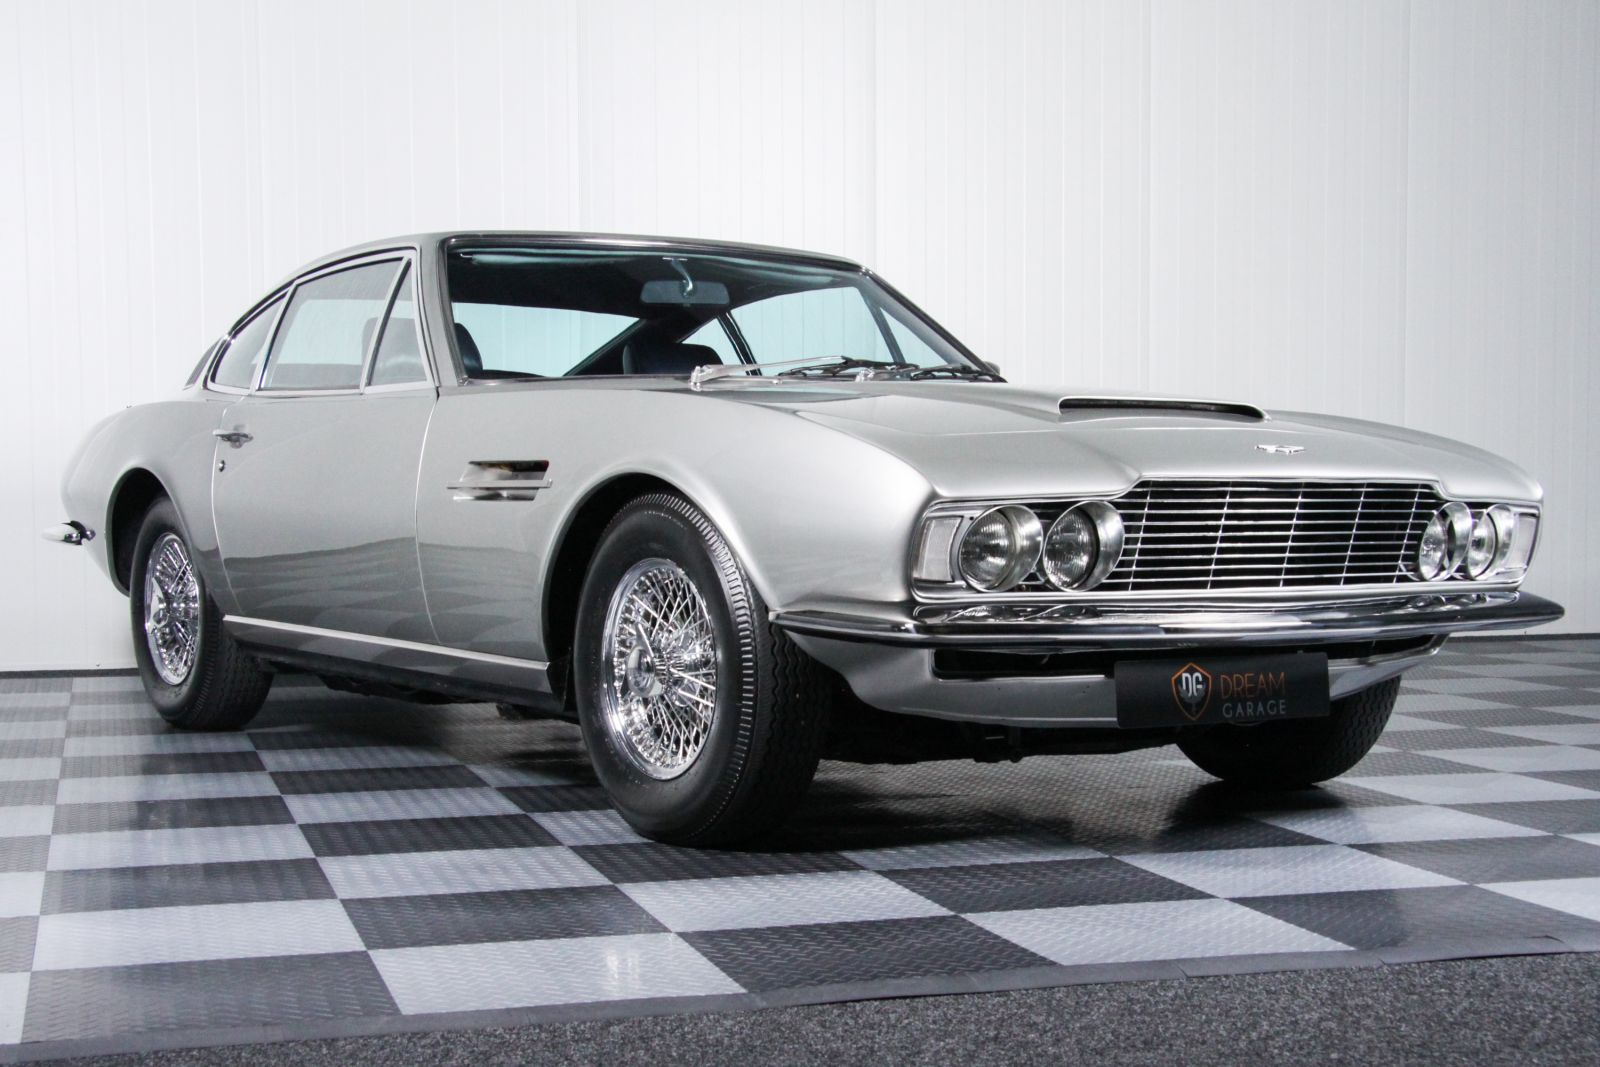 dream garage sold carsaston martin aston martin dbs v6 lhd. Black Bedroom Furniture Sets. Home Design Ideas